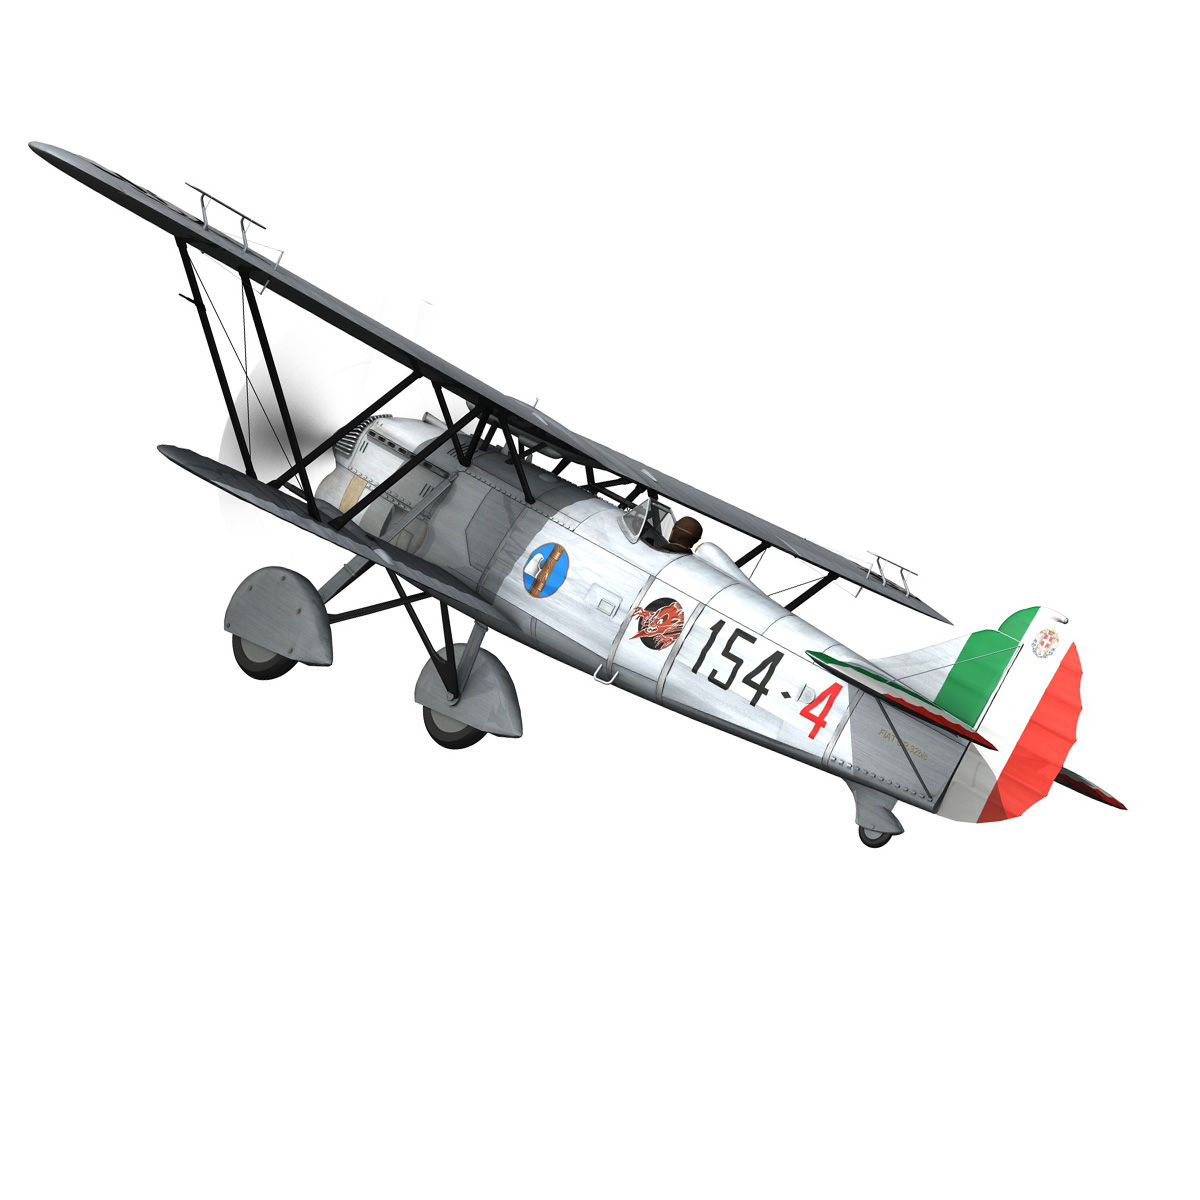 fiat cr.32 – italy airforce – 154 squadriglia 3d model fbx c4d lwo obj 268133